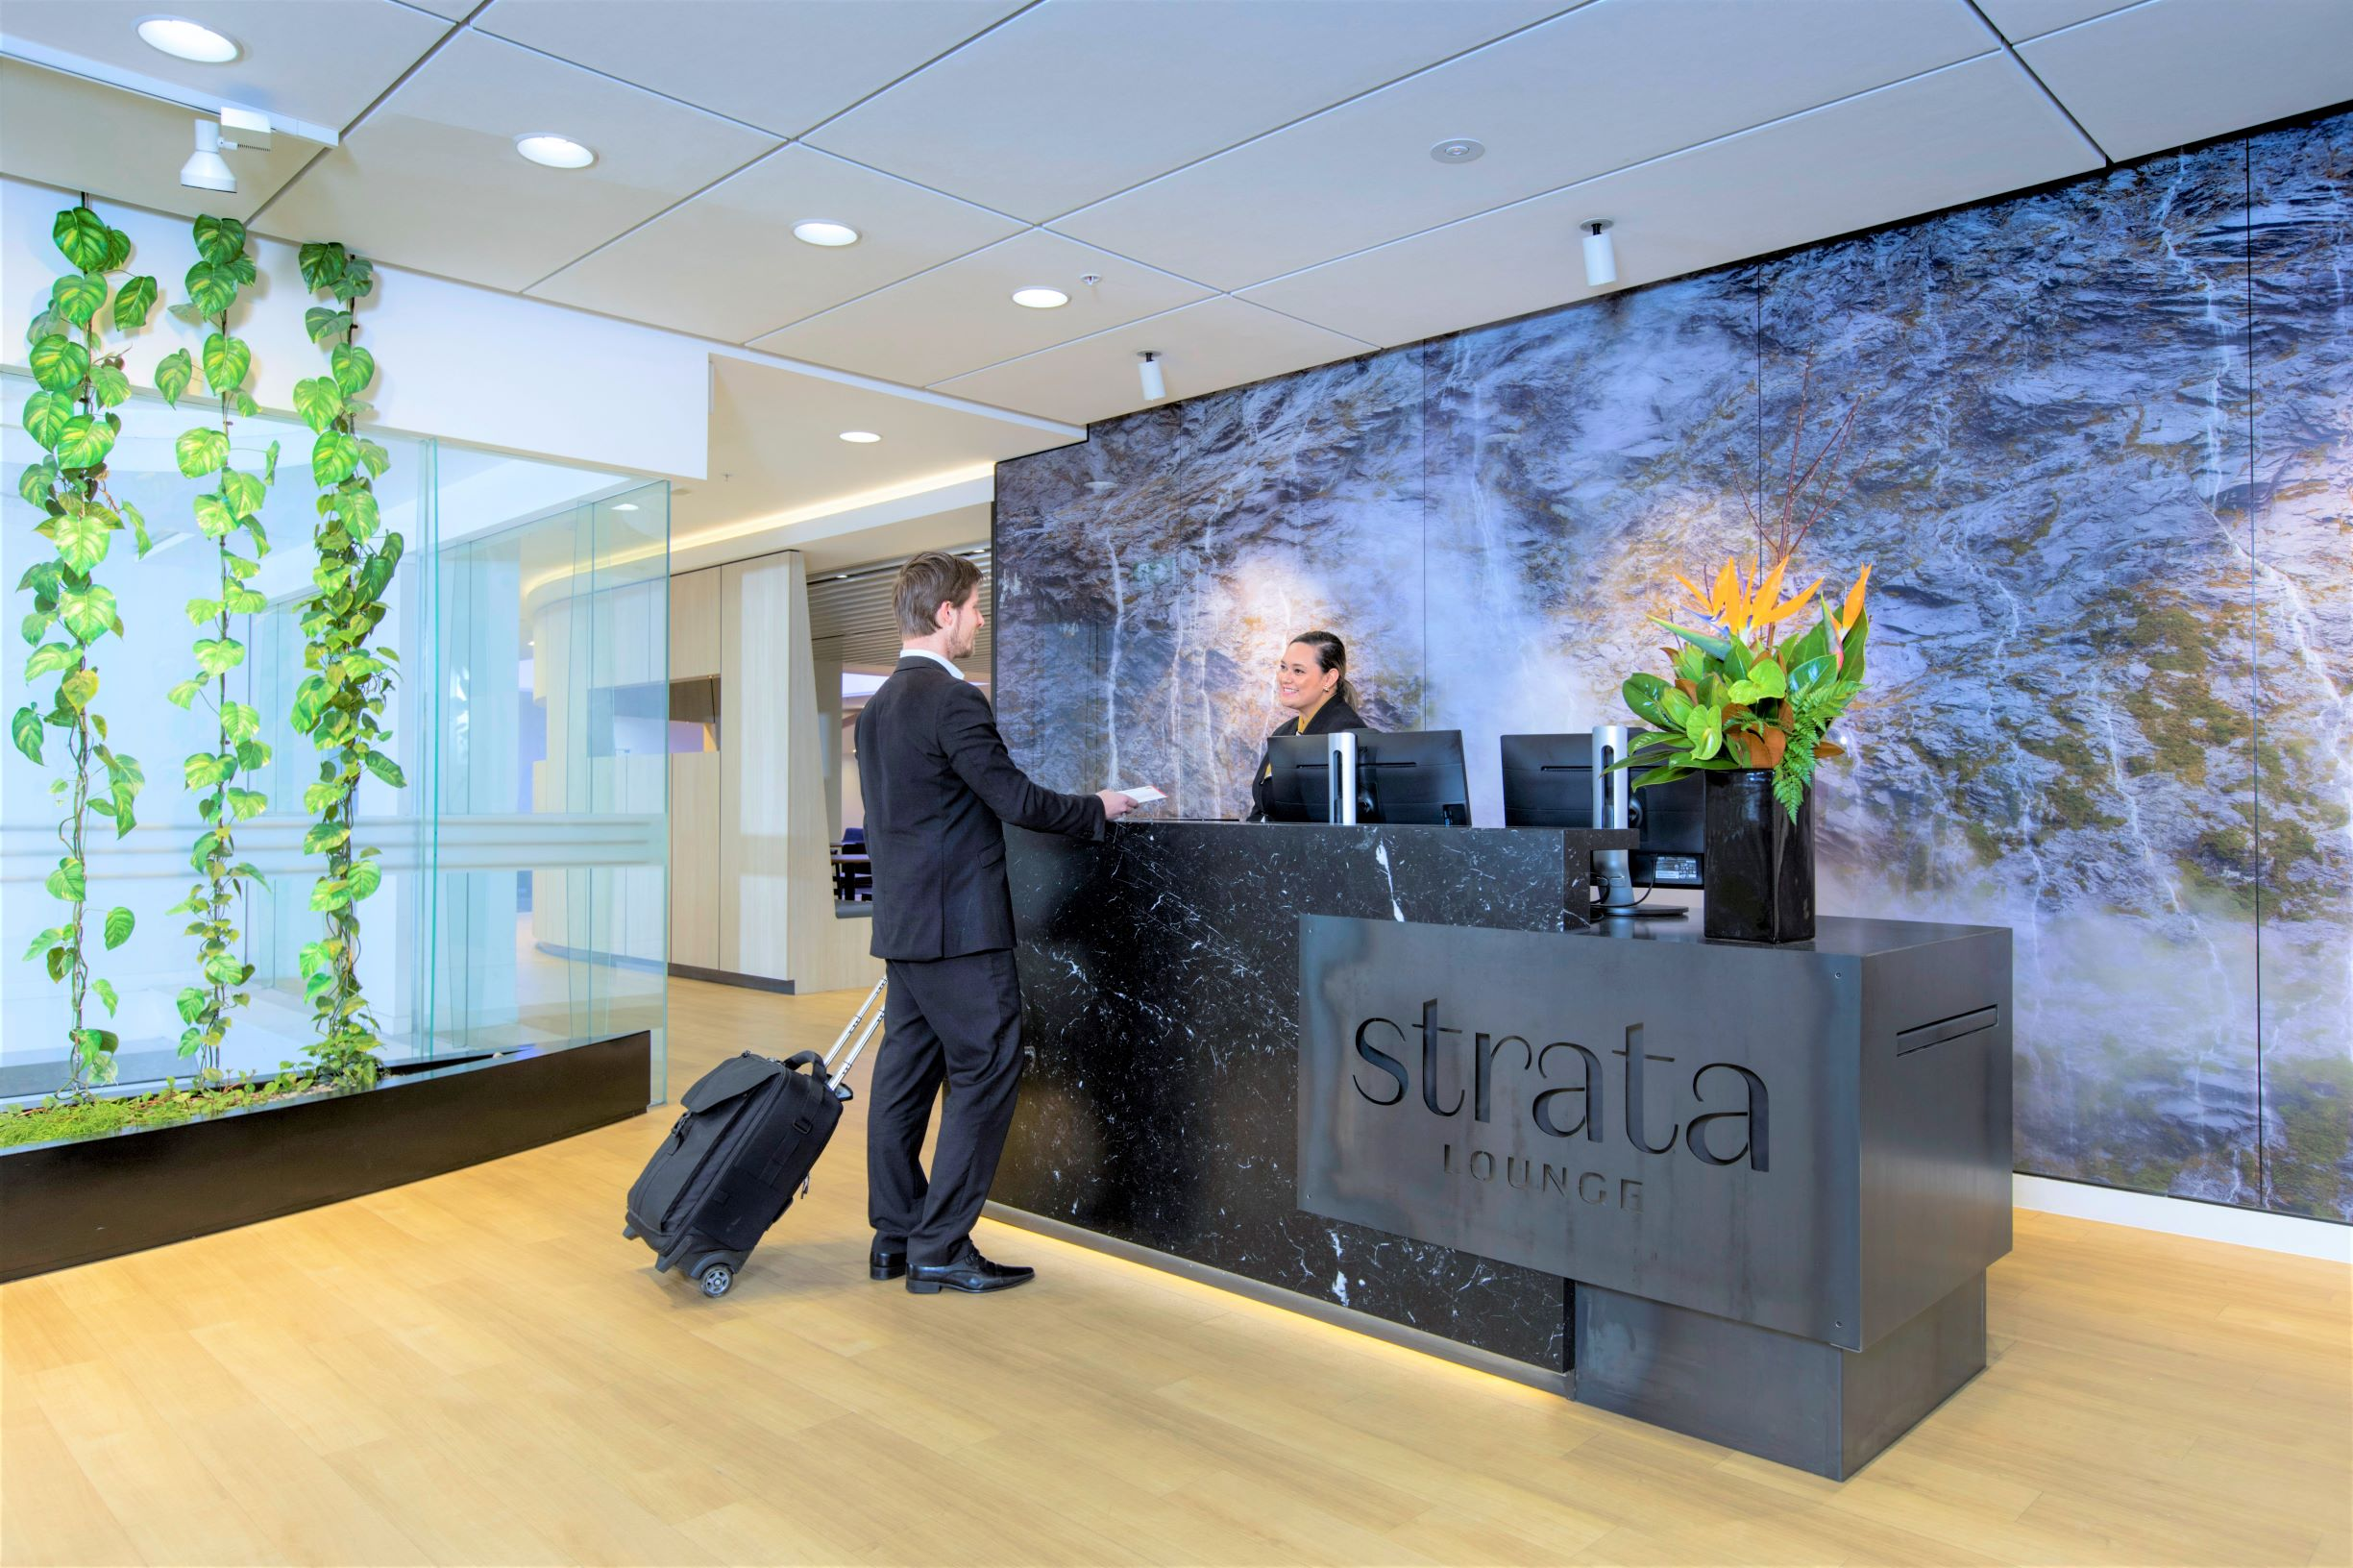 Strata Lounge Auckland overview | Point Hacks